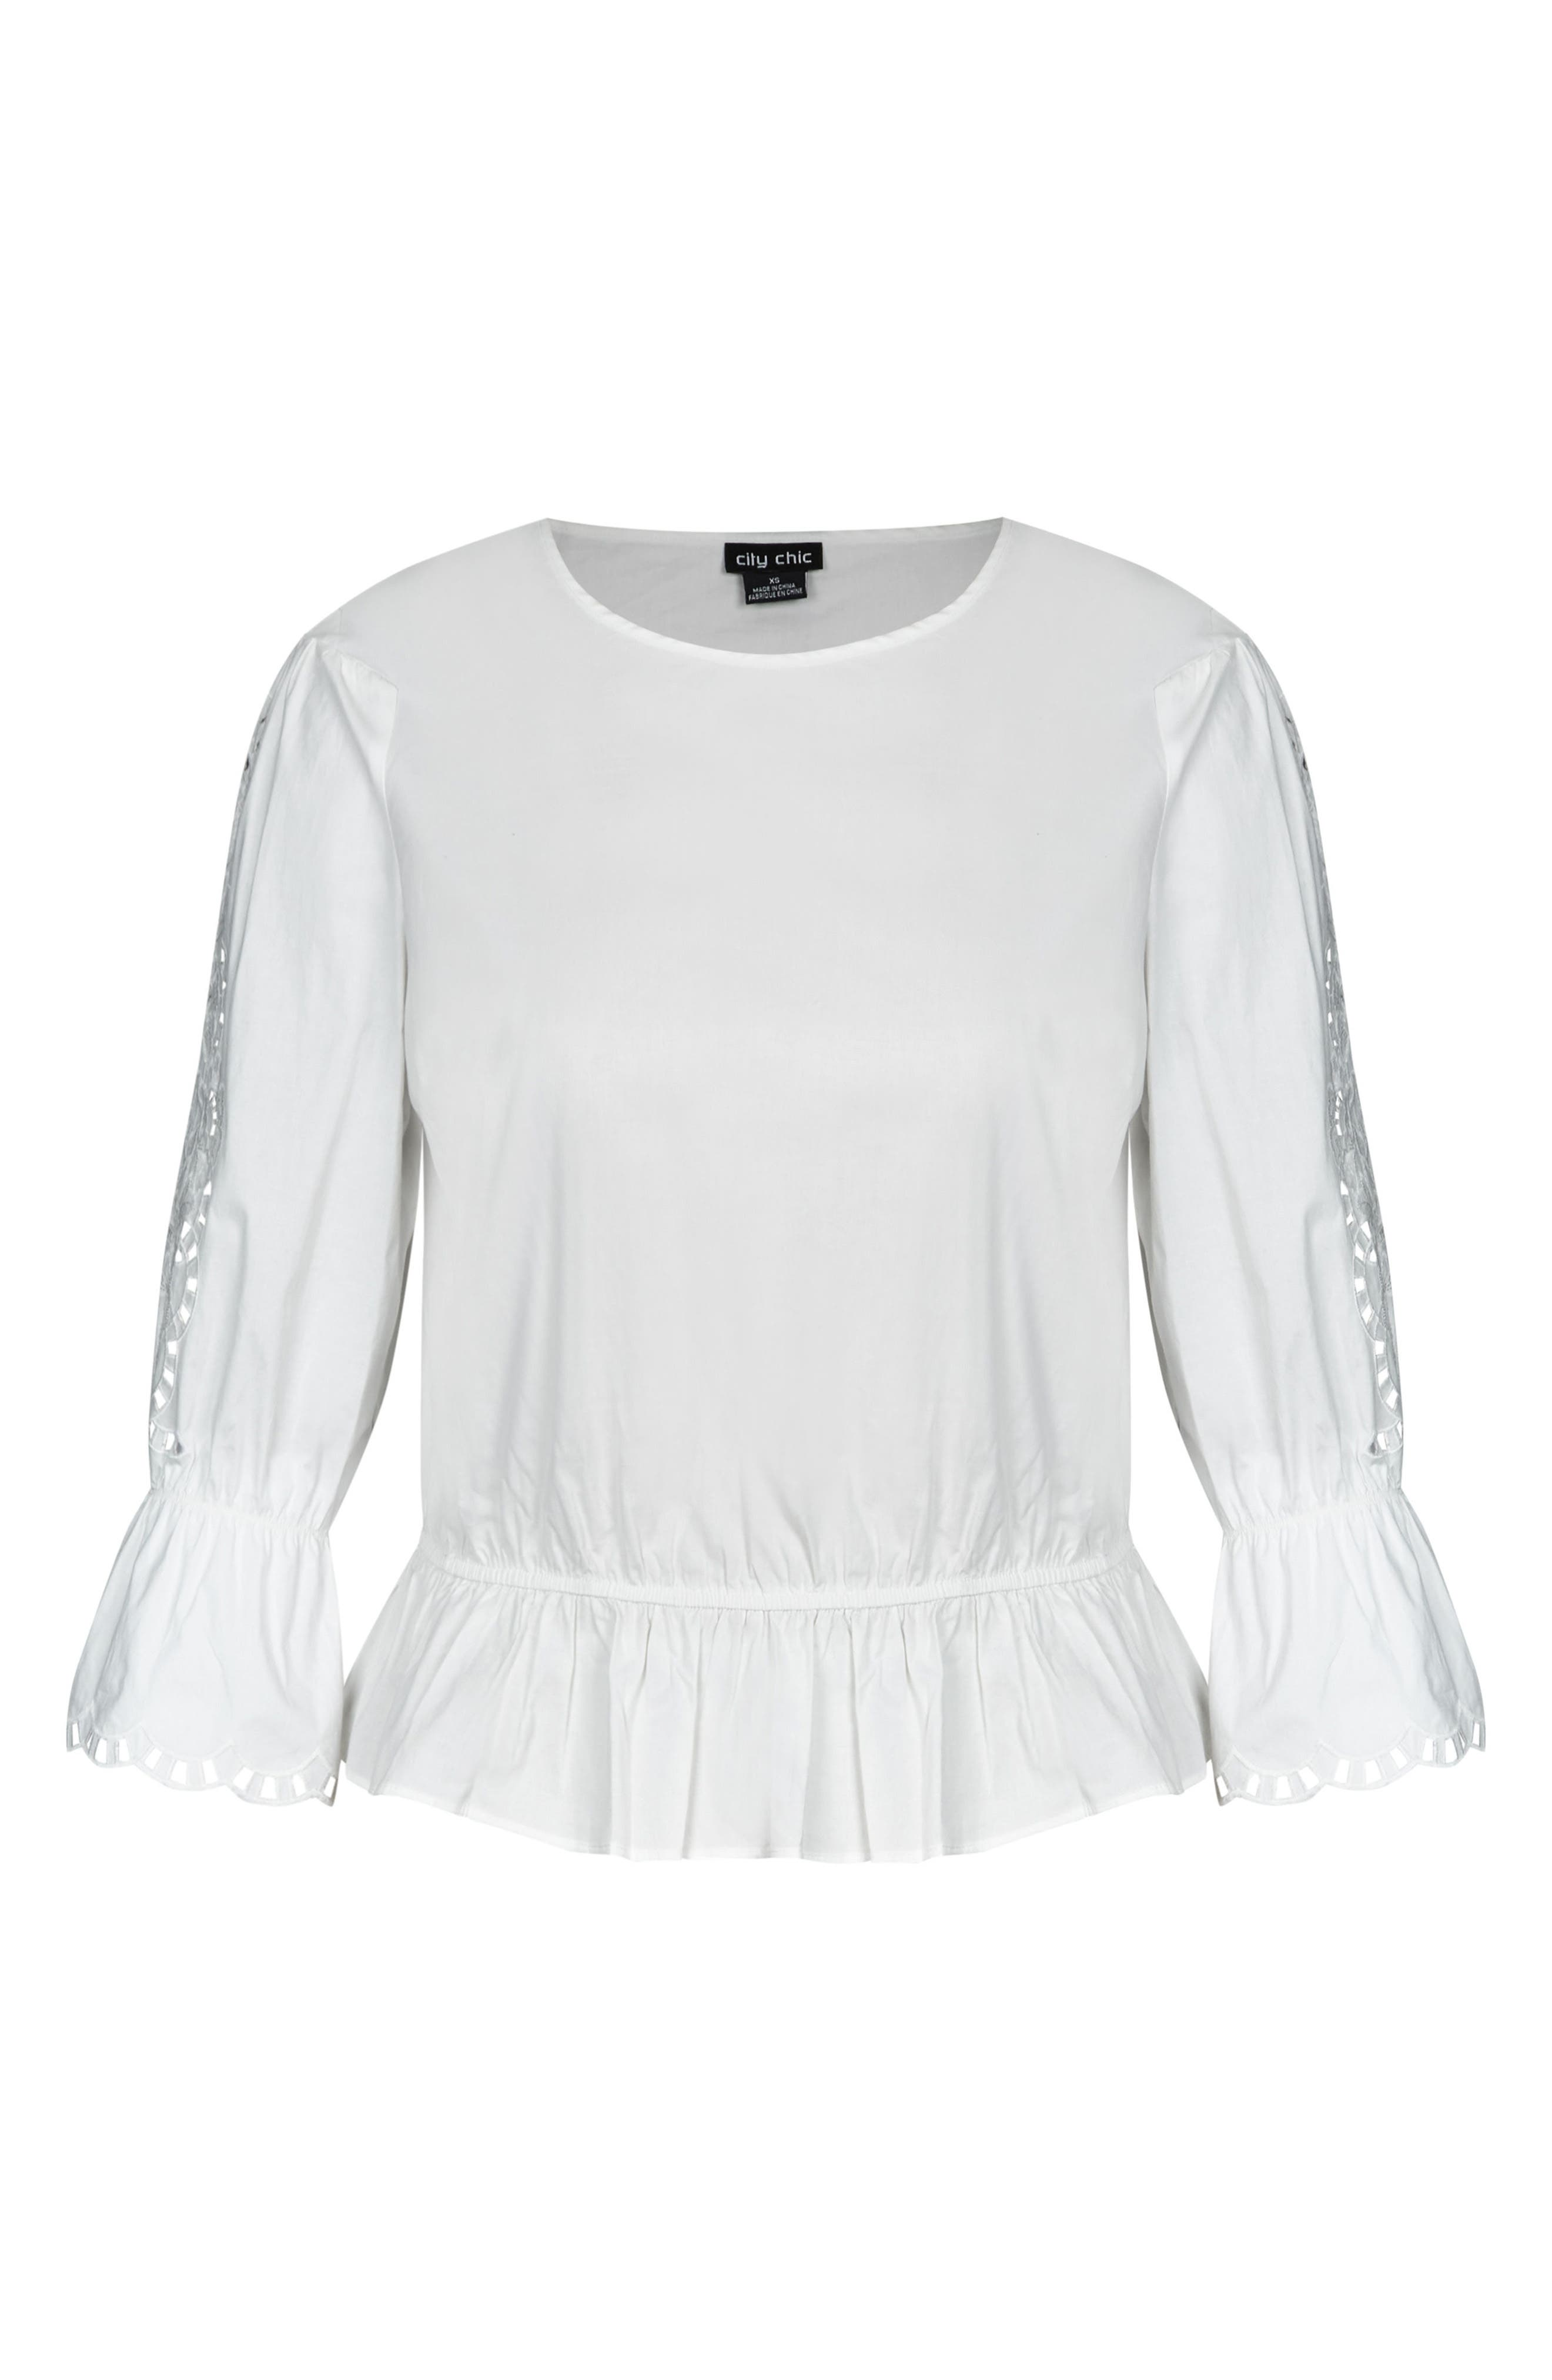 Day Dreamer Top,                             Alternate thumbnail 3, color,                             Ivory